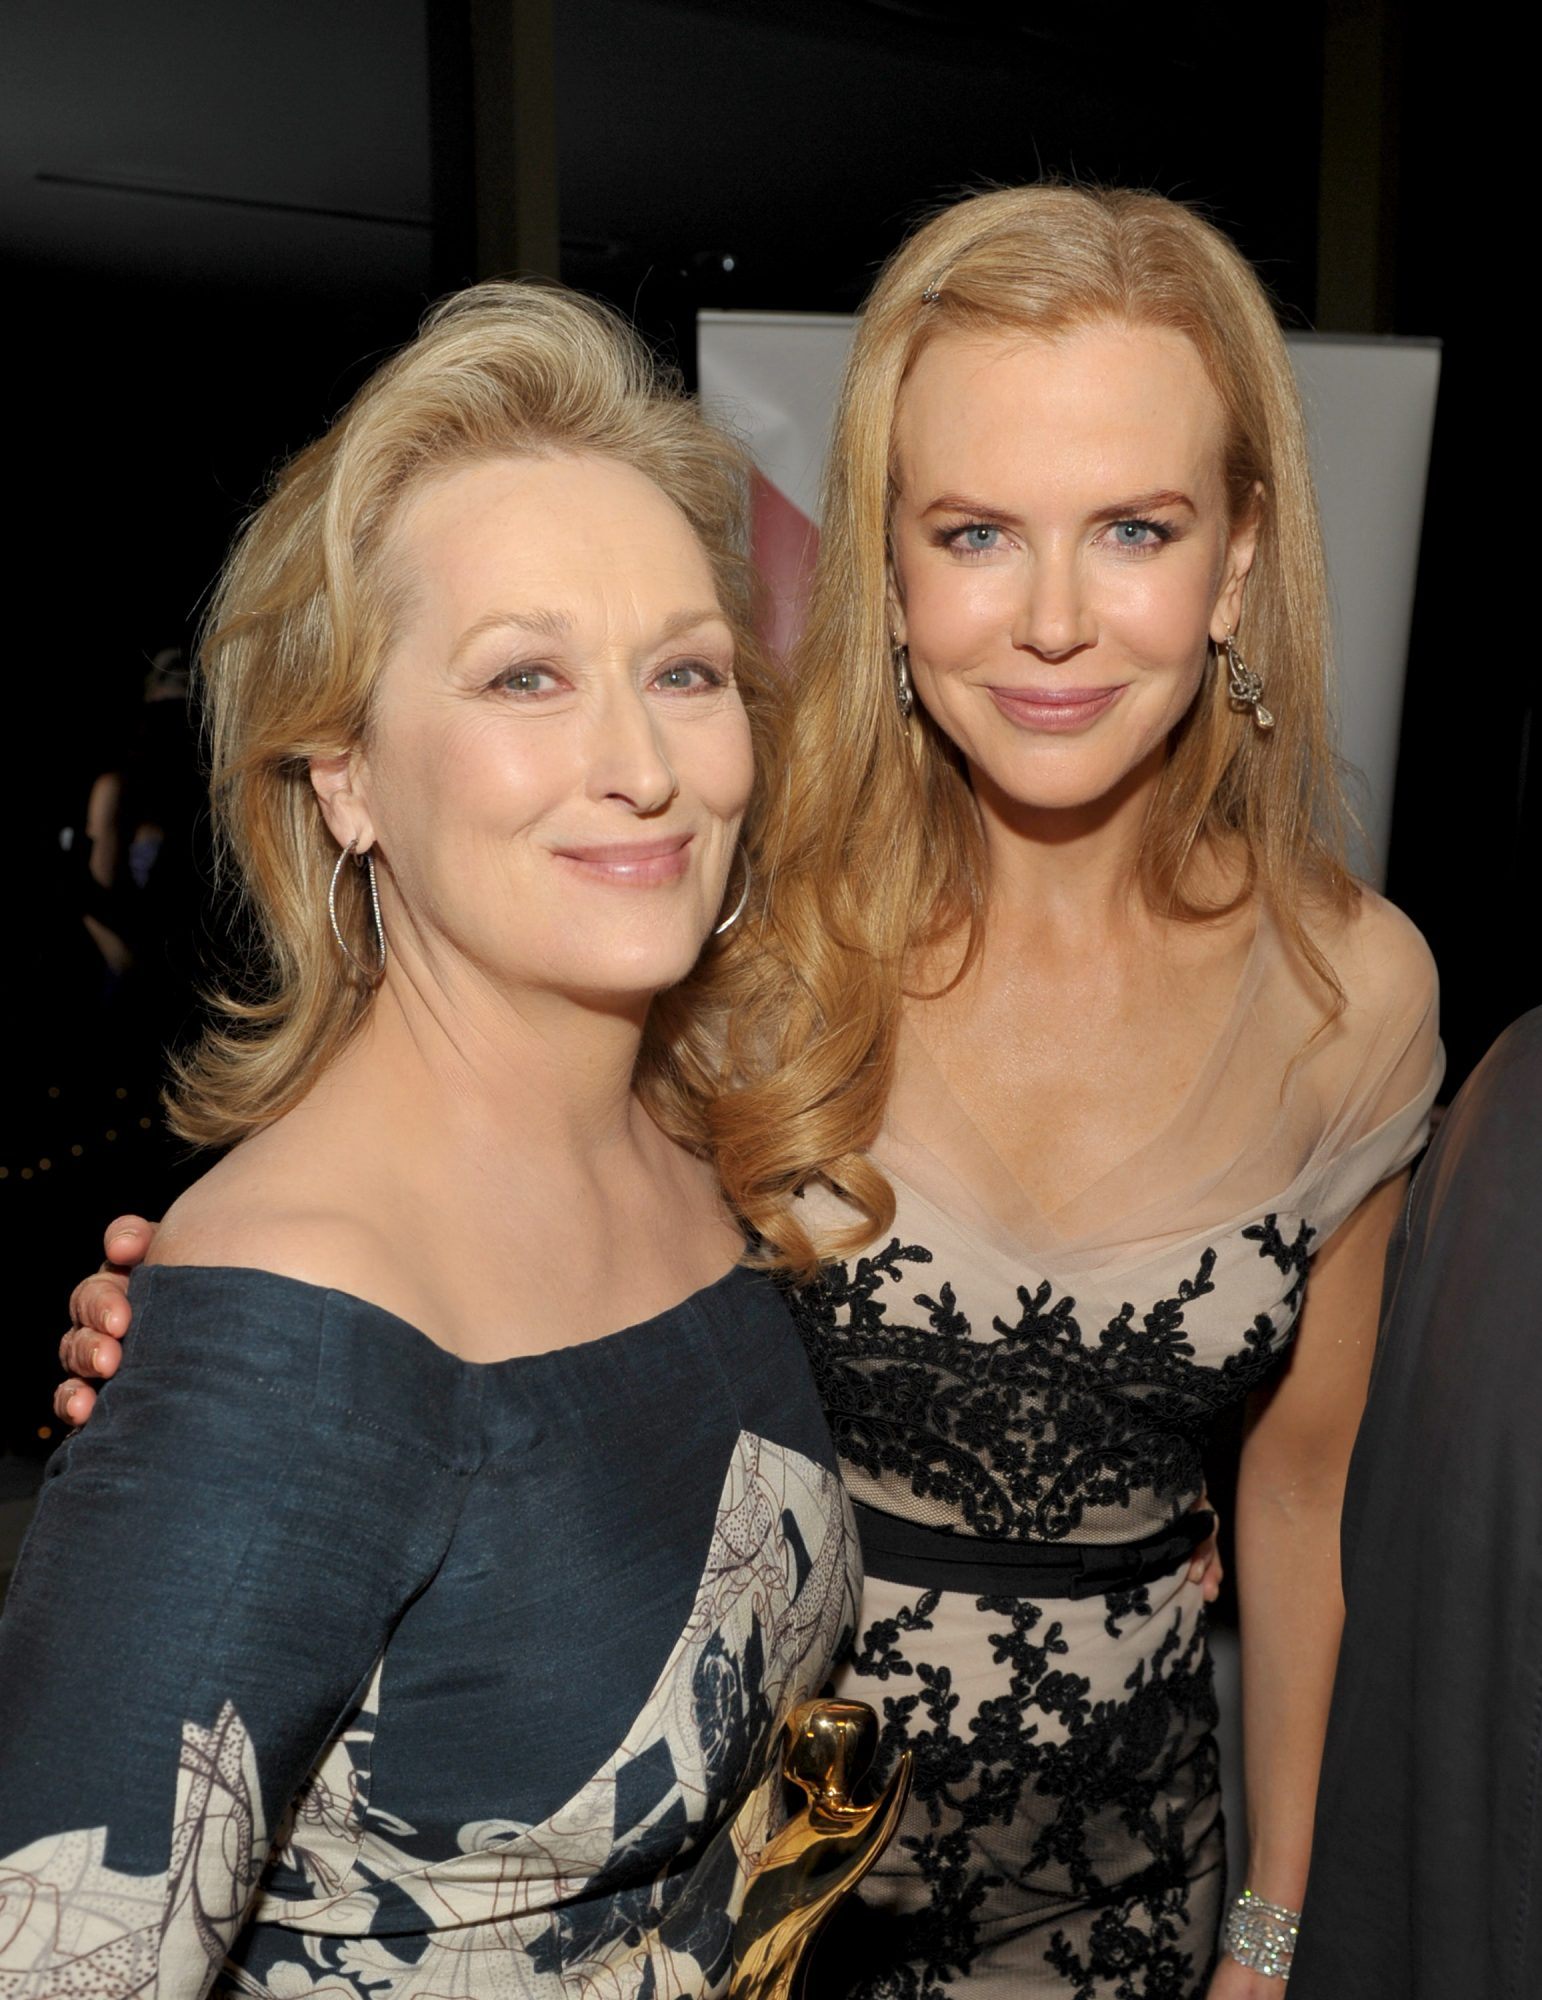 Meryl Streep and Nicole Kidman